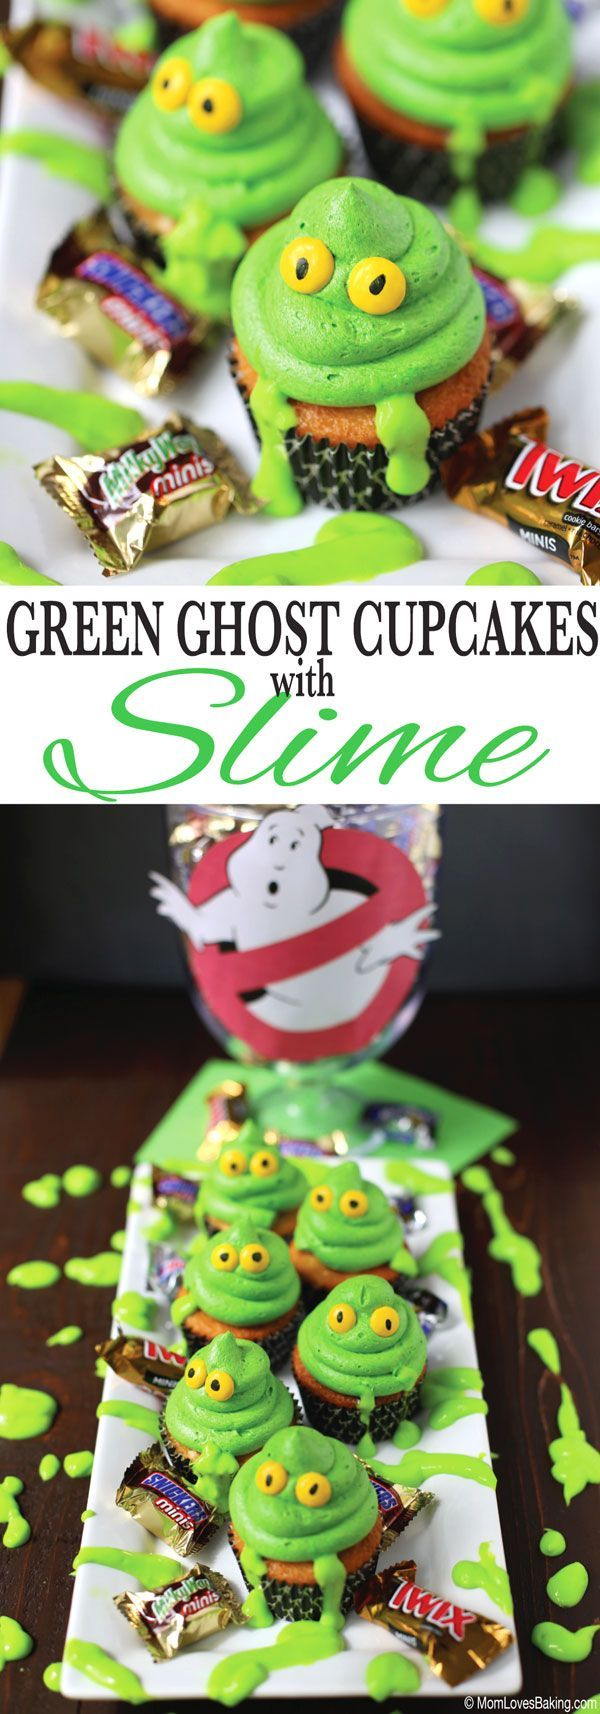 Ghostbusters is in theaters now! How about some Green Ghost Cupcakes with Slime! #BTSSpirit #ad /walmart/